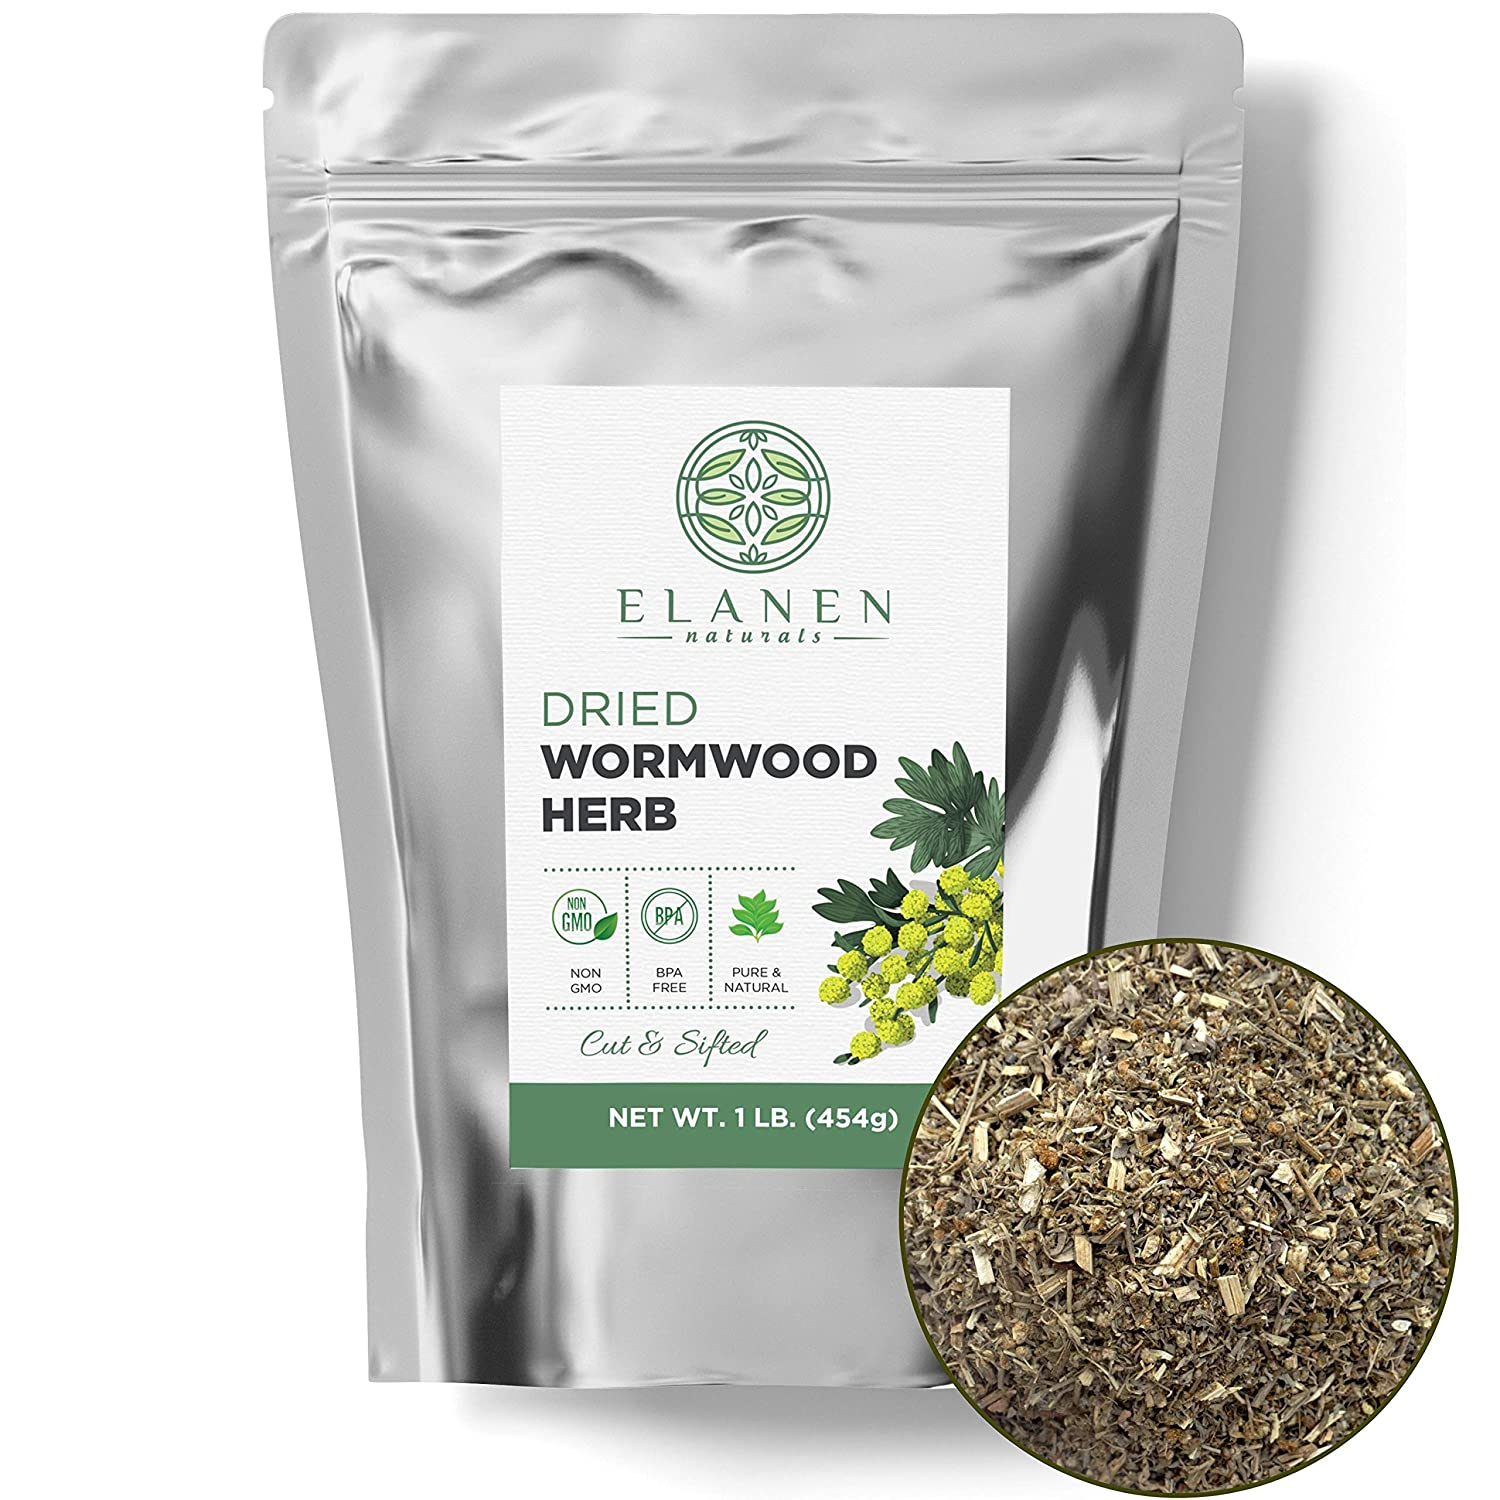 Wormwood Herb 16 oz. (1 lb. Bag), Contains Organic Wormwood Herb in non-BPA Packaging, Wormwood Tea, Worm Wood, Ajenjo Herb, Artemisia Absinthium, Cut & Sifted